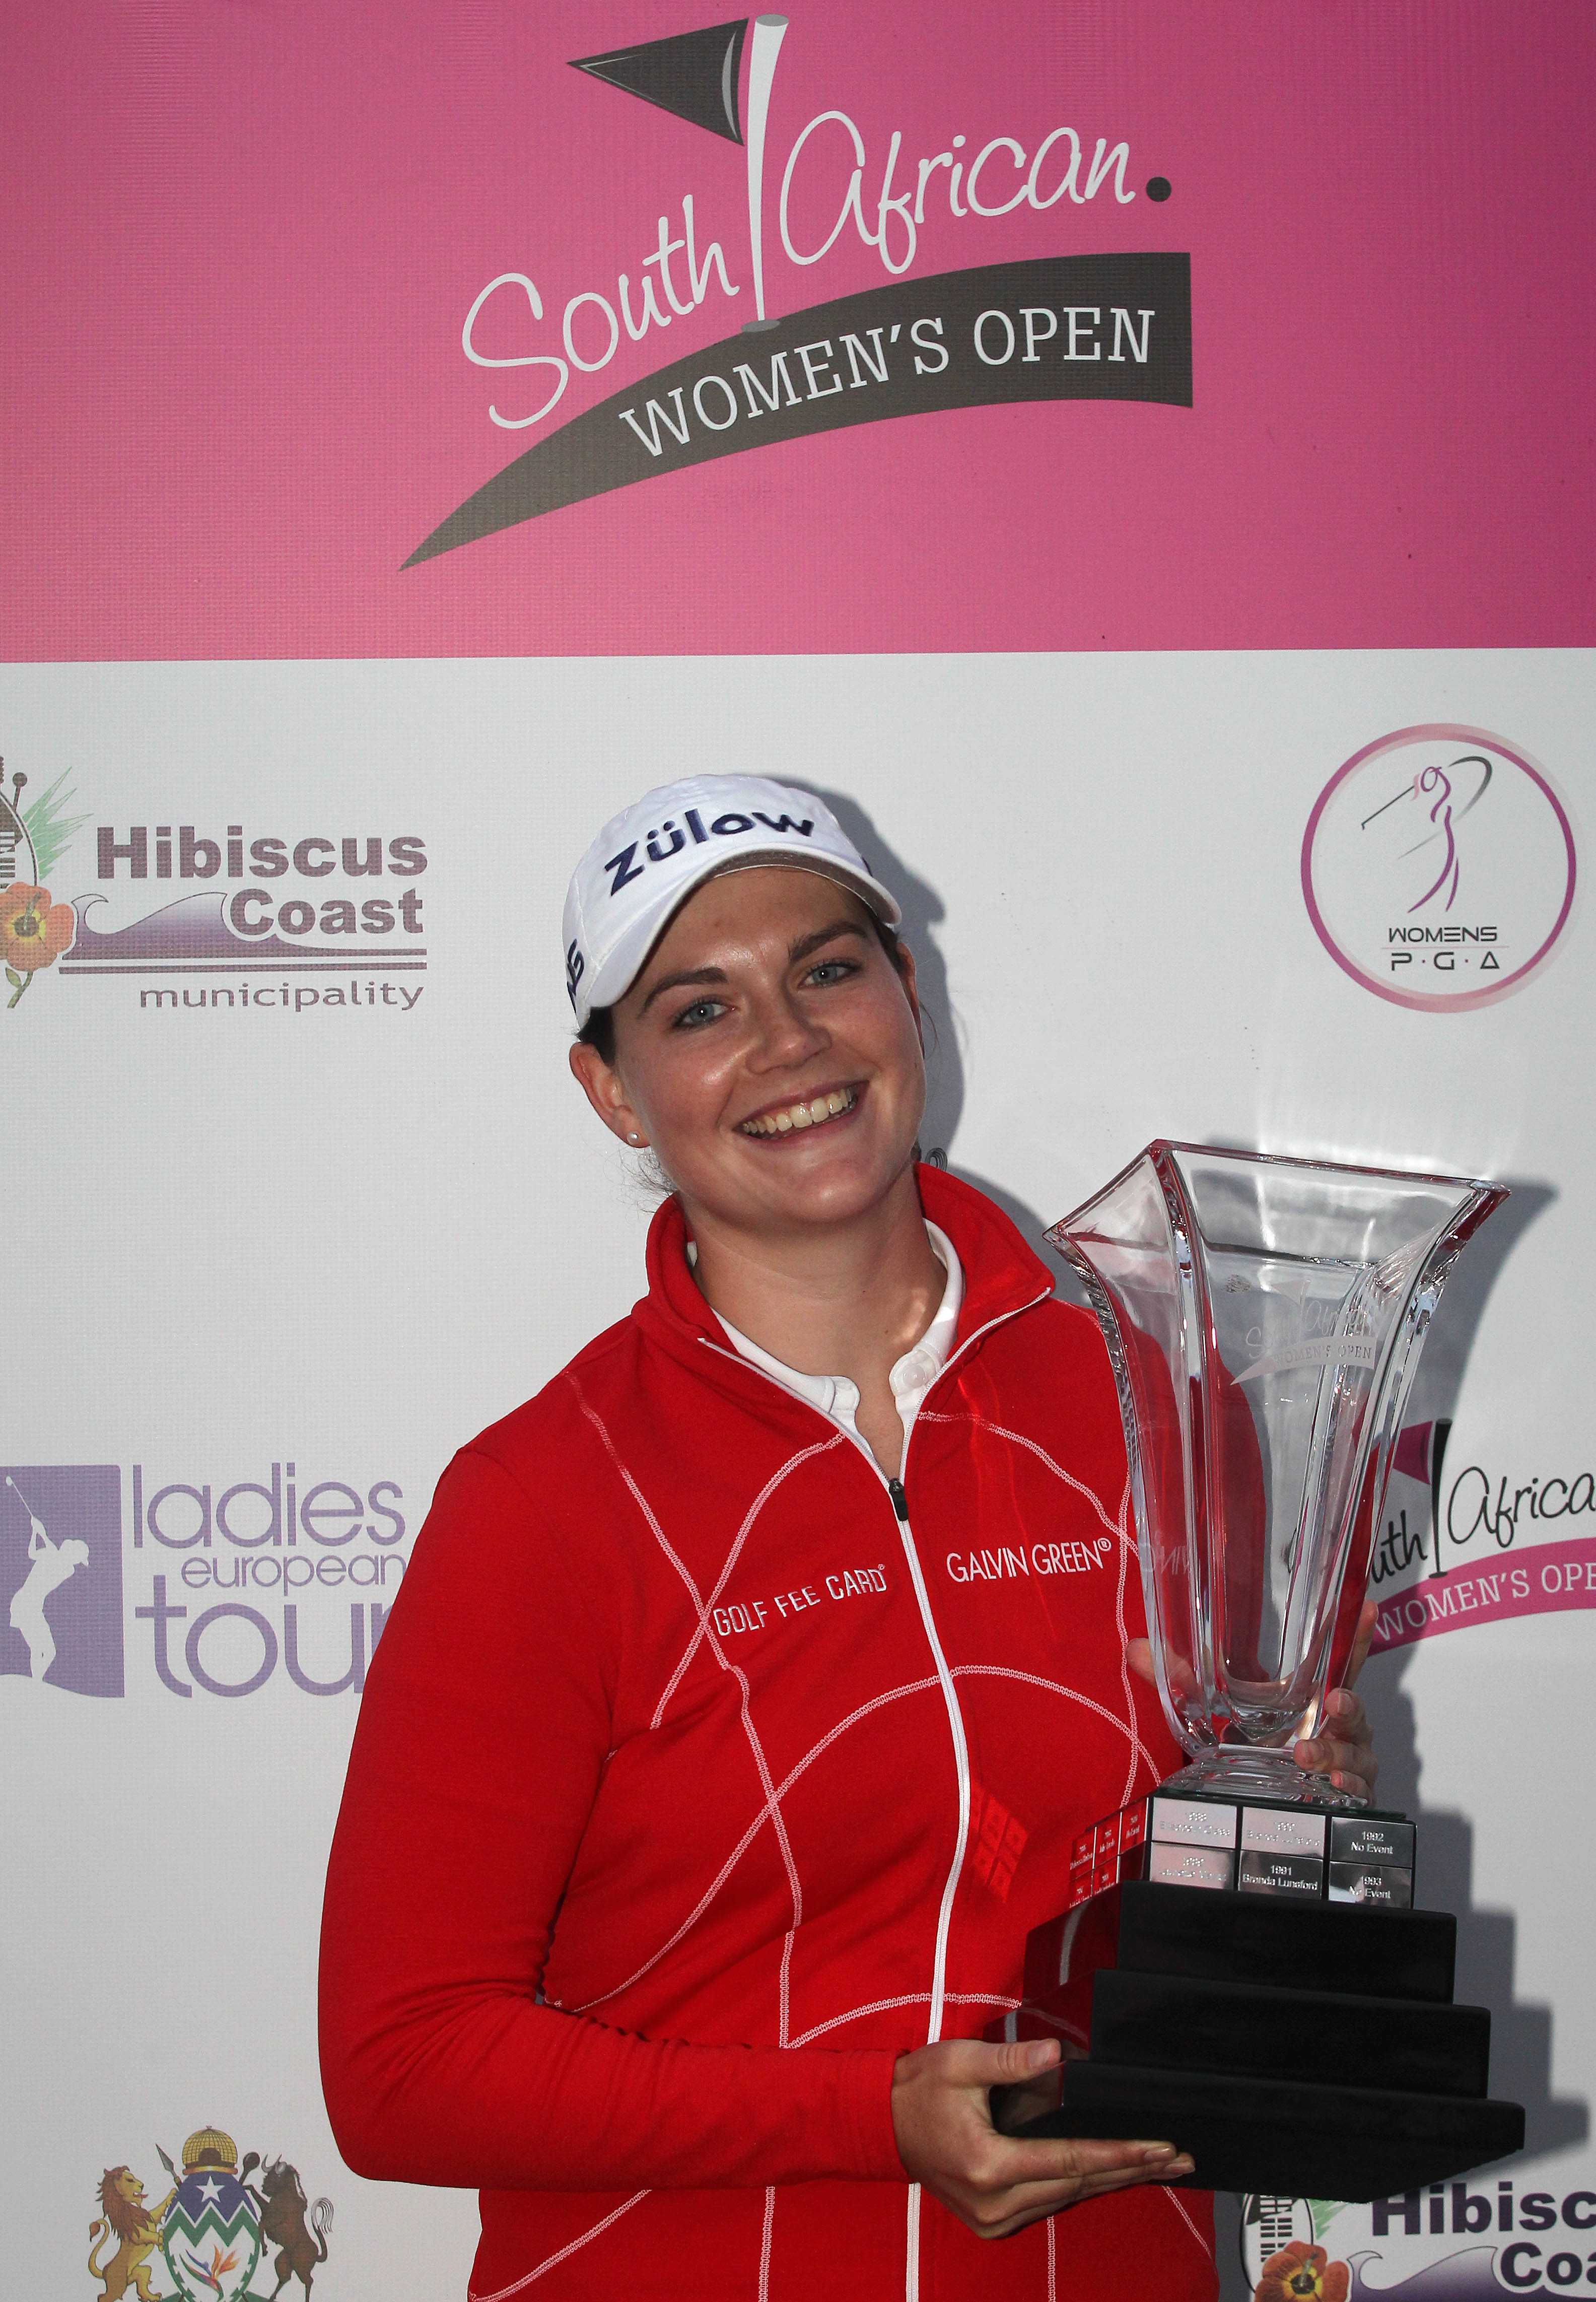 Caroline_Masson_South_African_Womens_Open